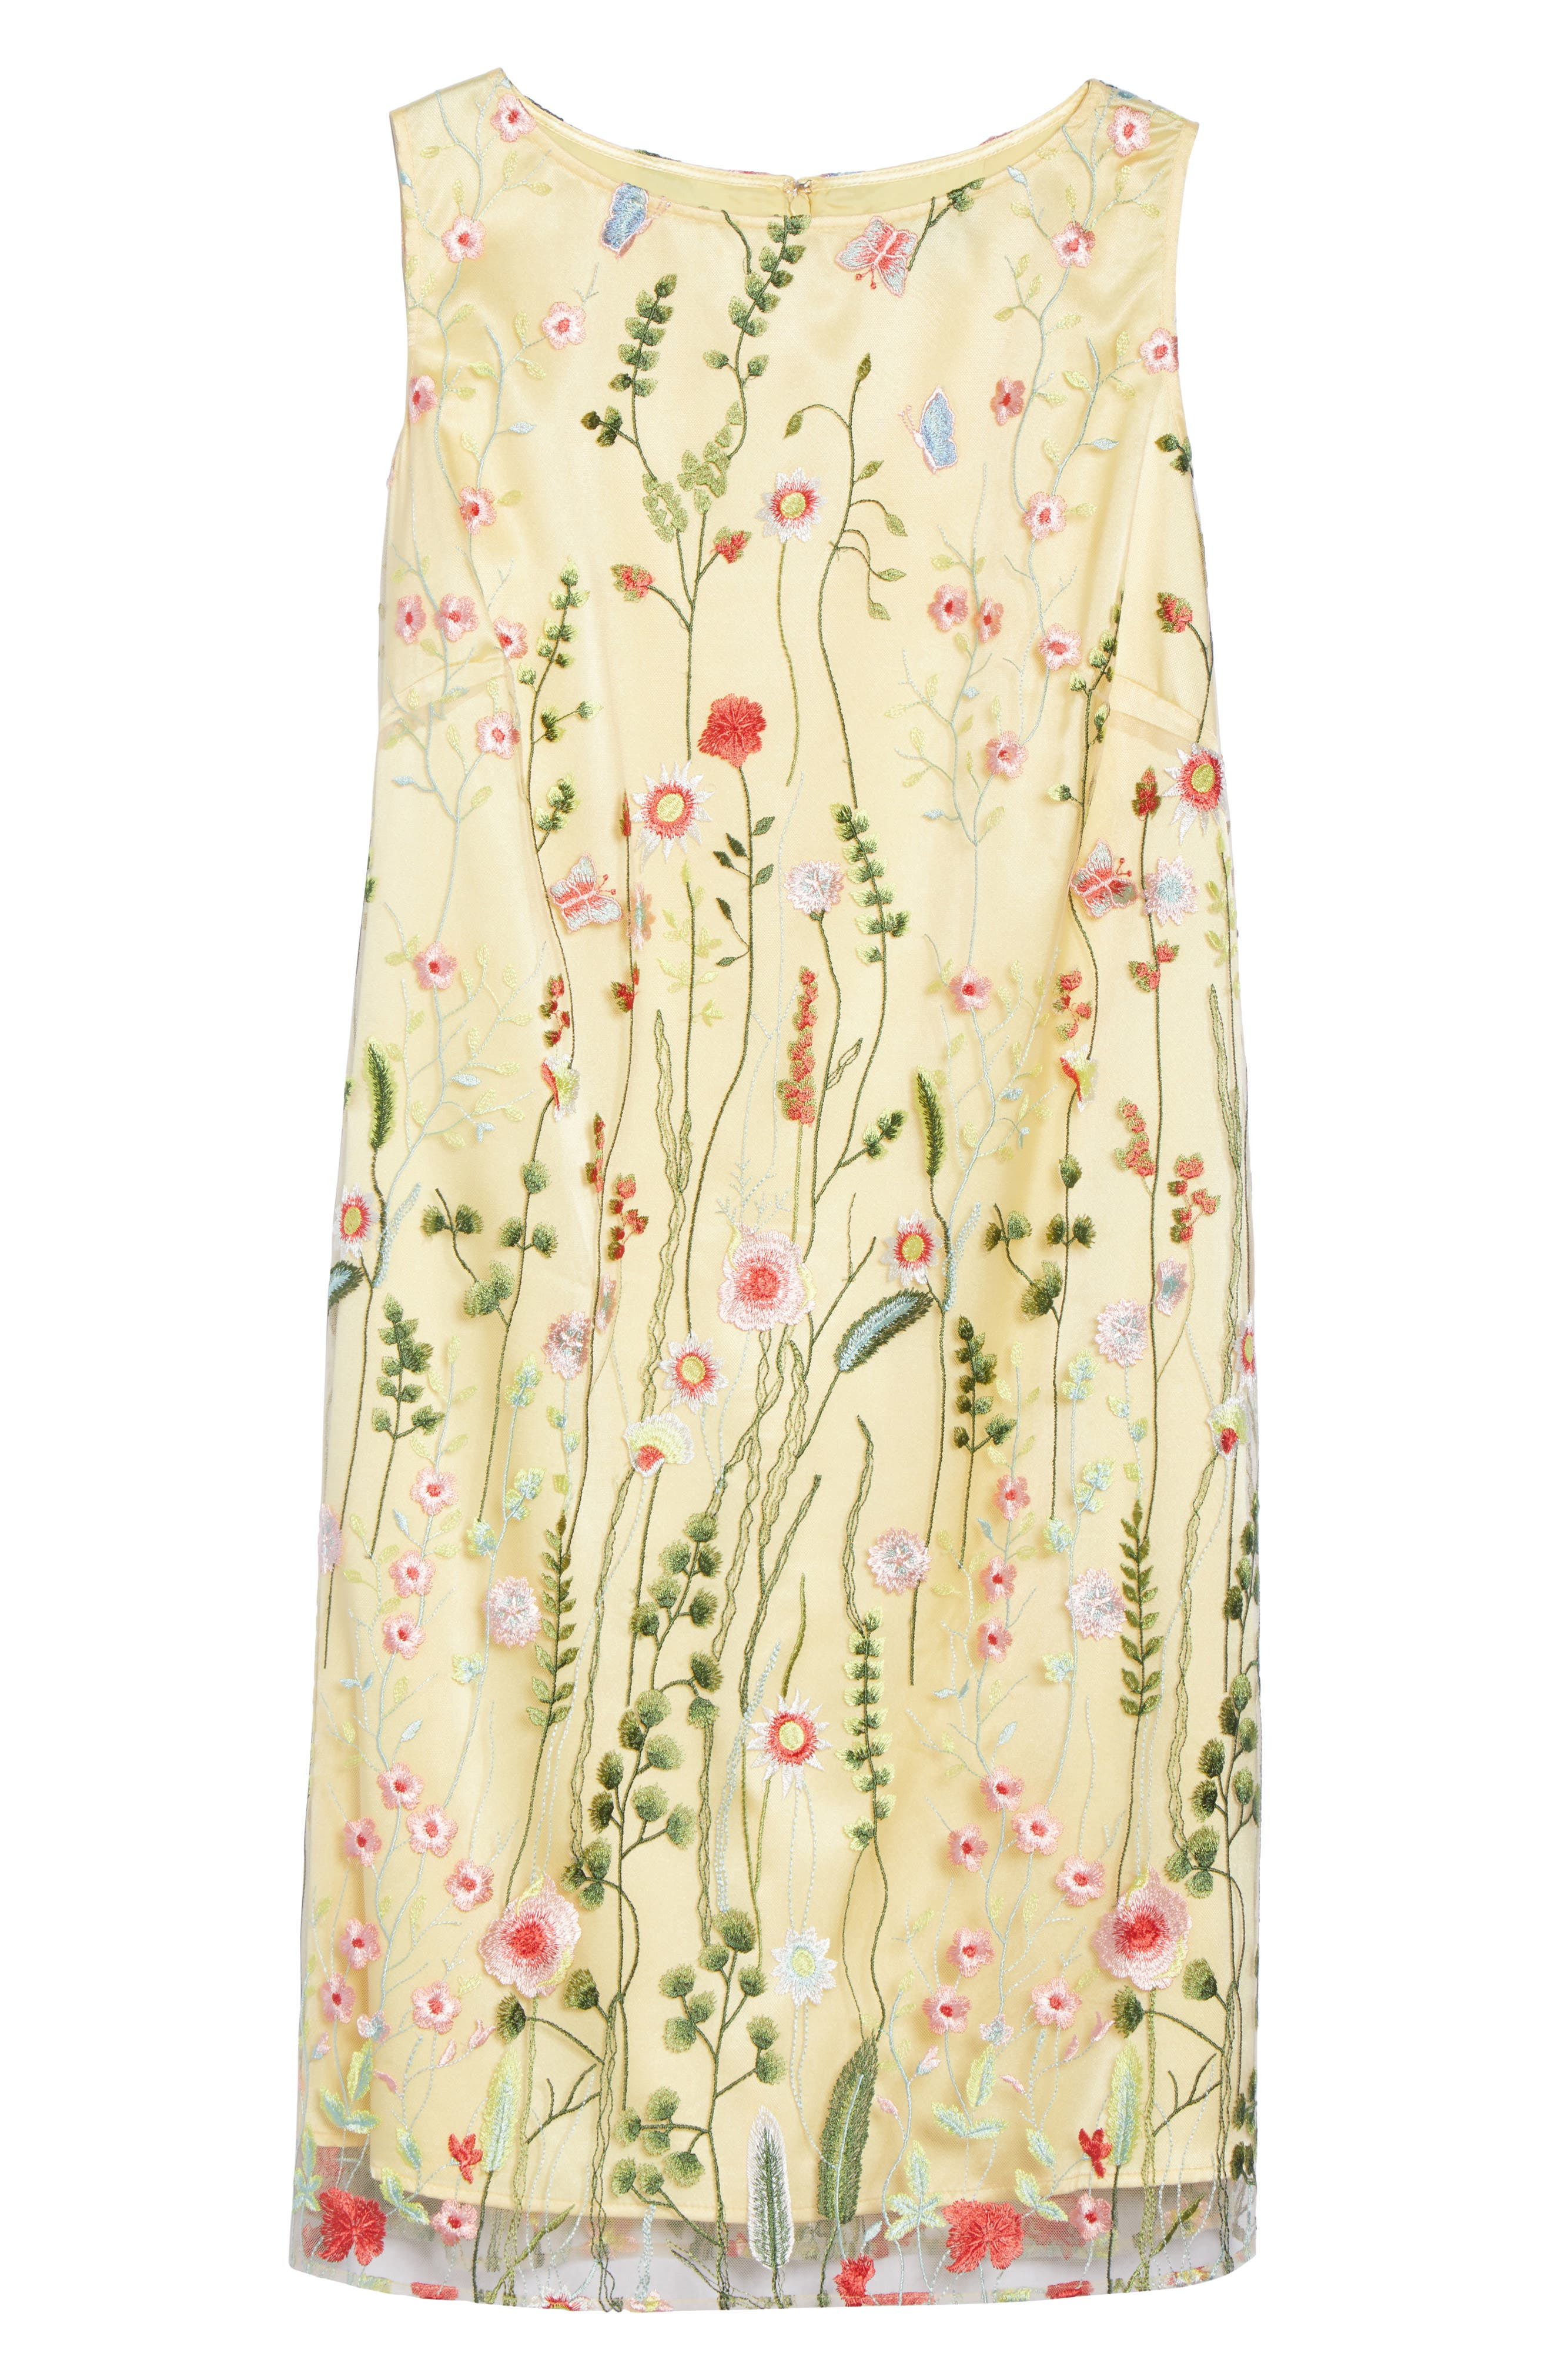 Floral Embroidered Shift Dress,                             Alternate thumbnail 6, color,                             Gold/ Blush/ Green